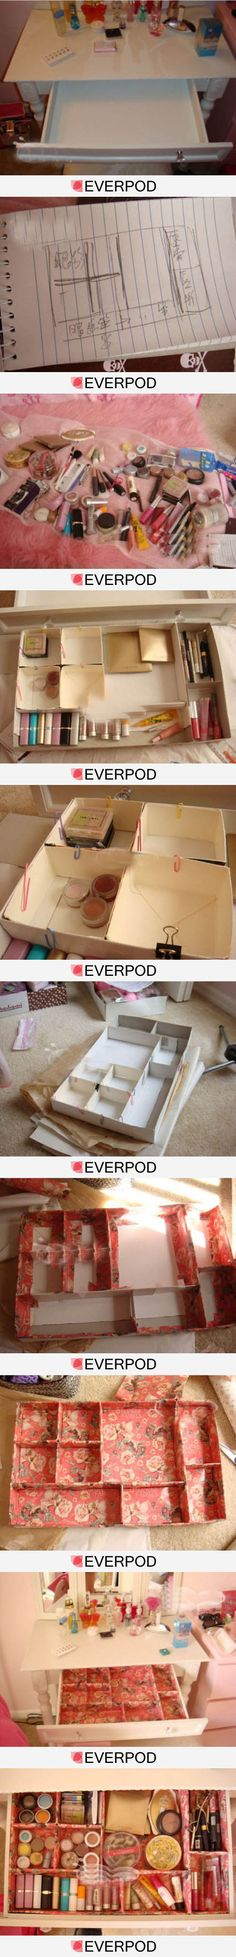 DIY drawer organizer. AWESOME!